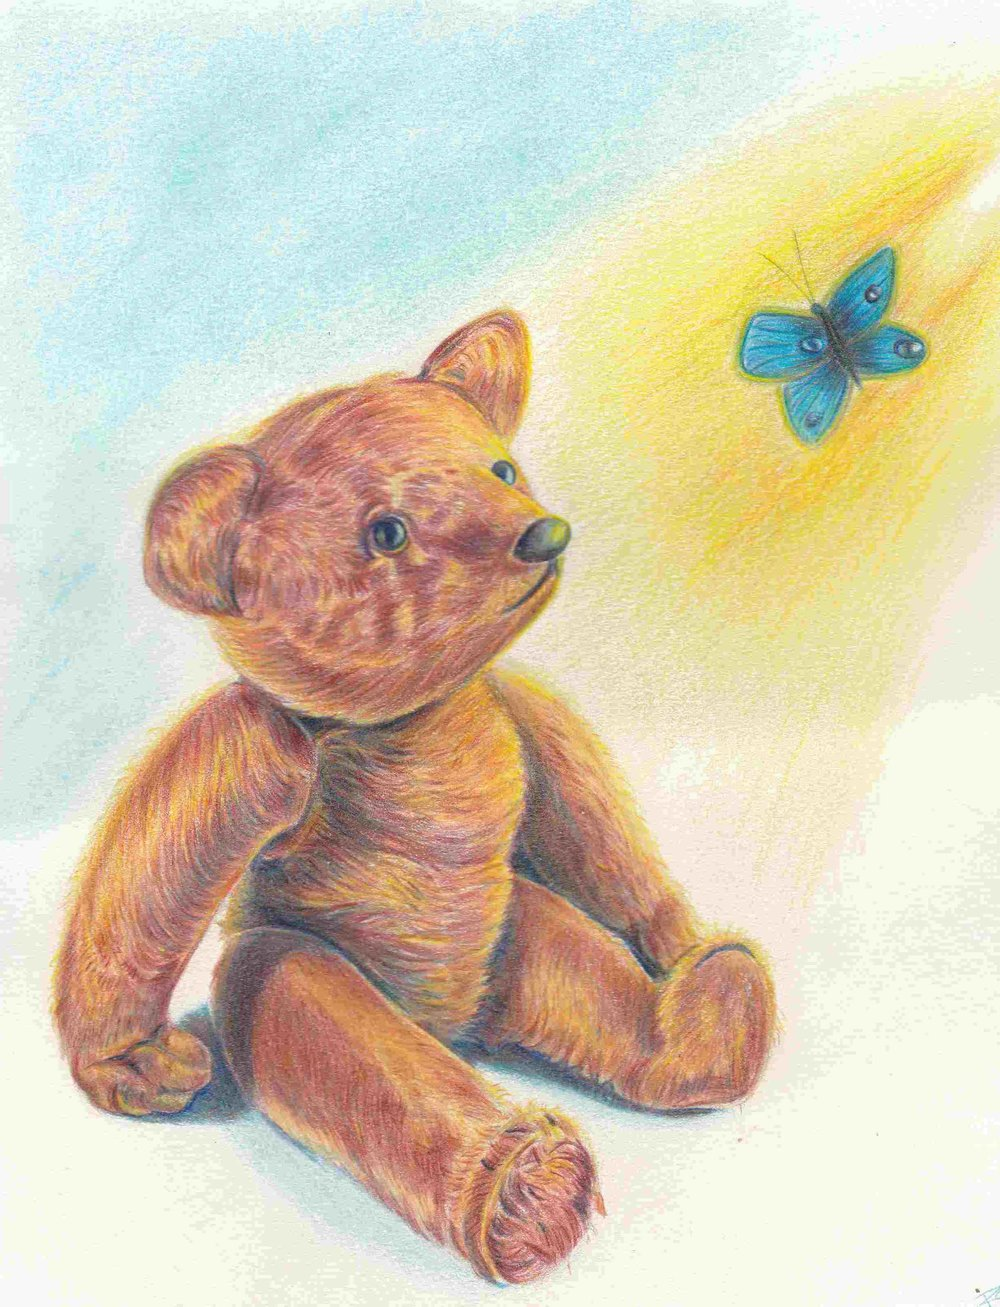 teddy bear drawing by Robert Lopez Revised -Teddy Bear drawing for fundraising event - Copy.jpg